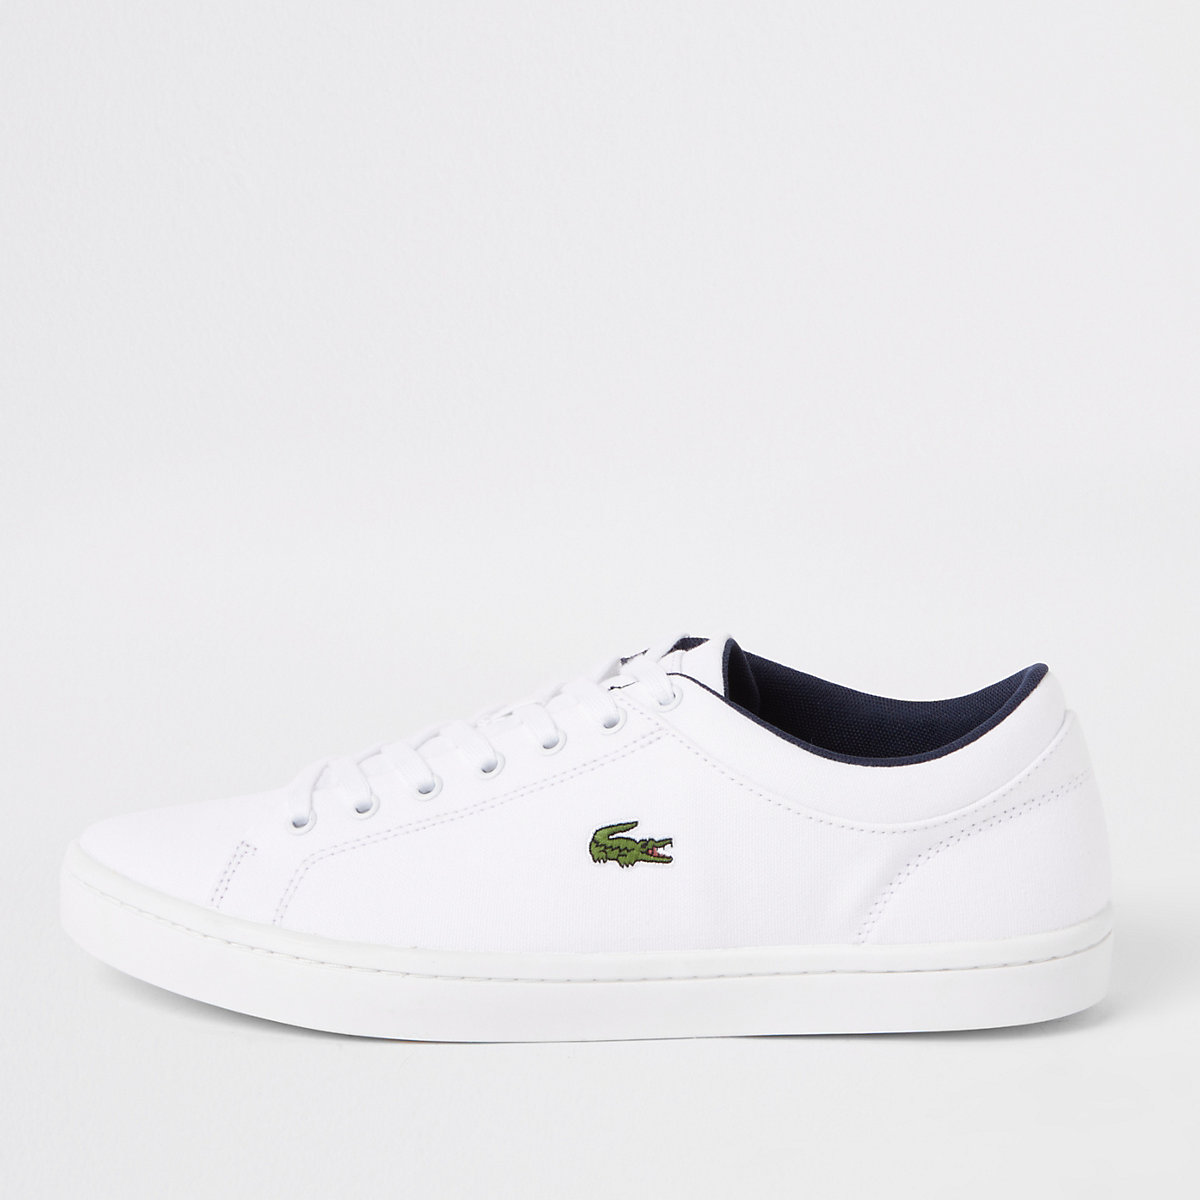 e24750731f0238 Lacoste Straightset white trainers - Trainers - Shoes   Boots - men